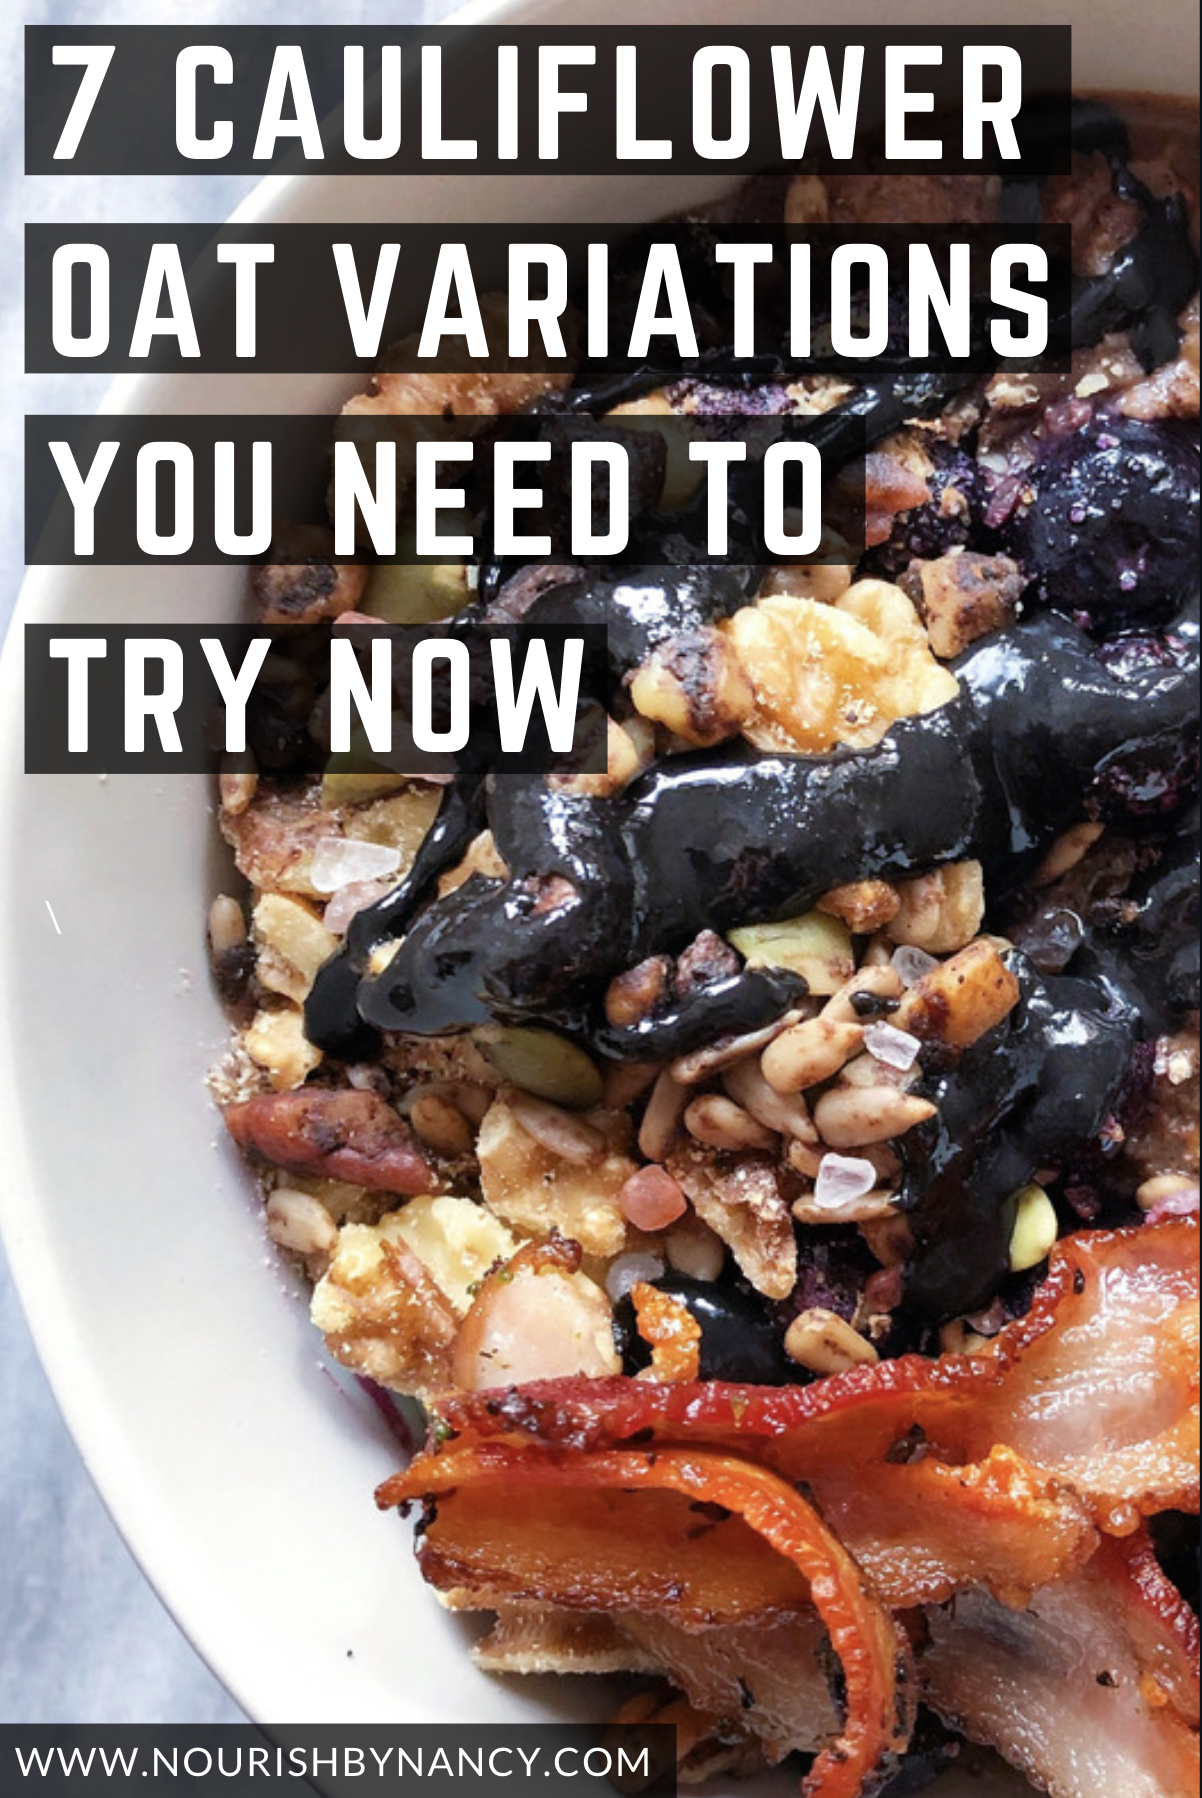 7 Cauli Oat Variations You Need to Try Now